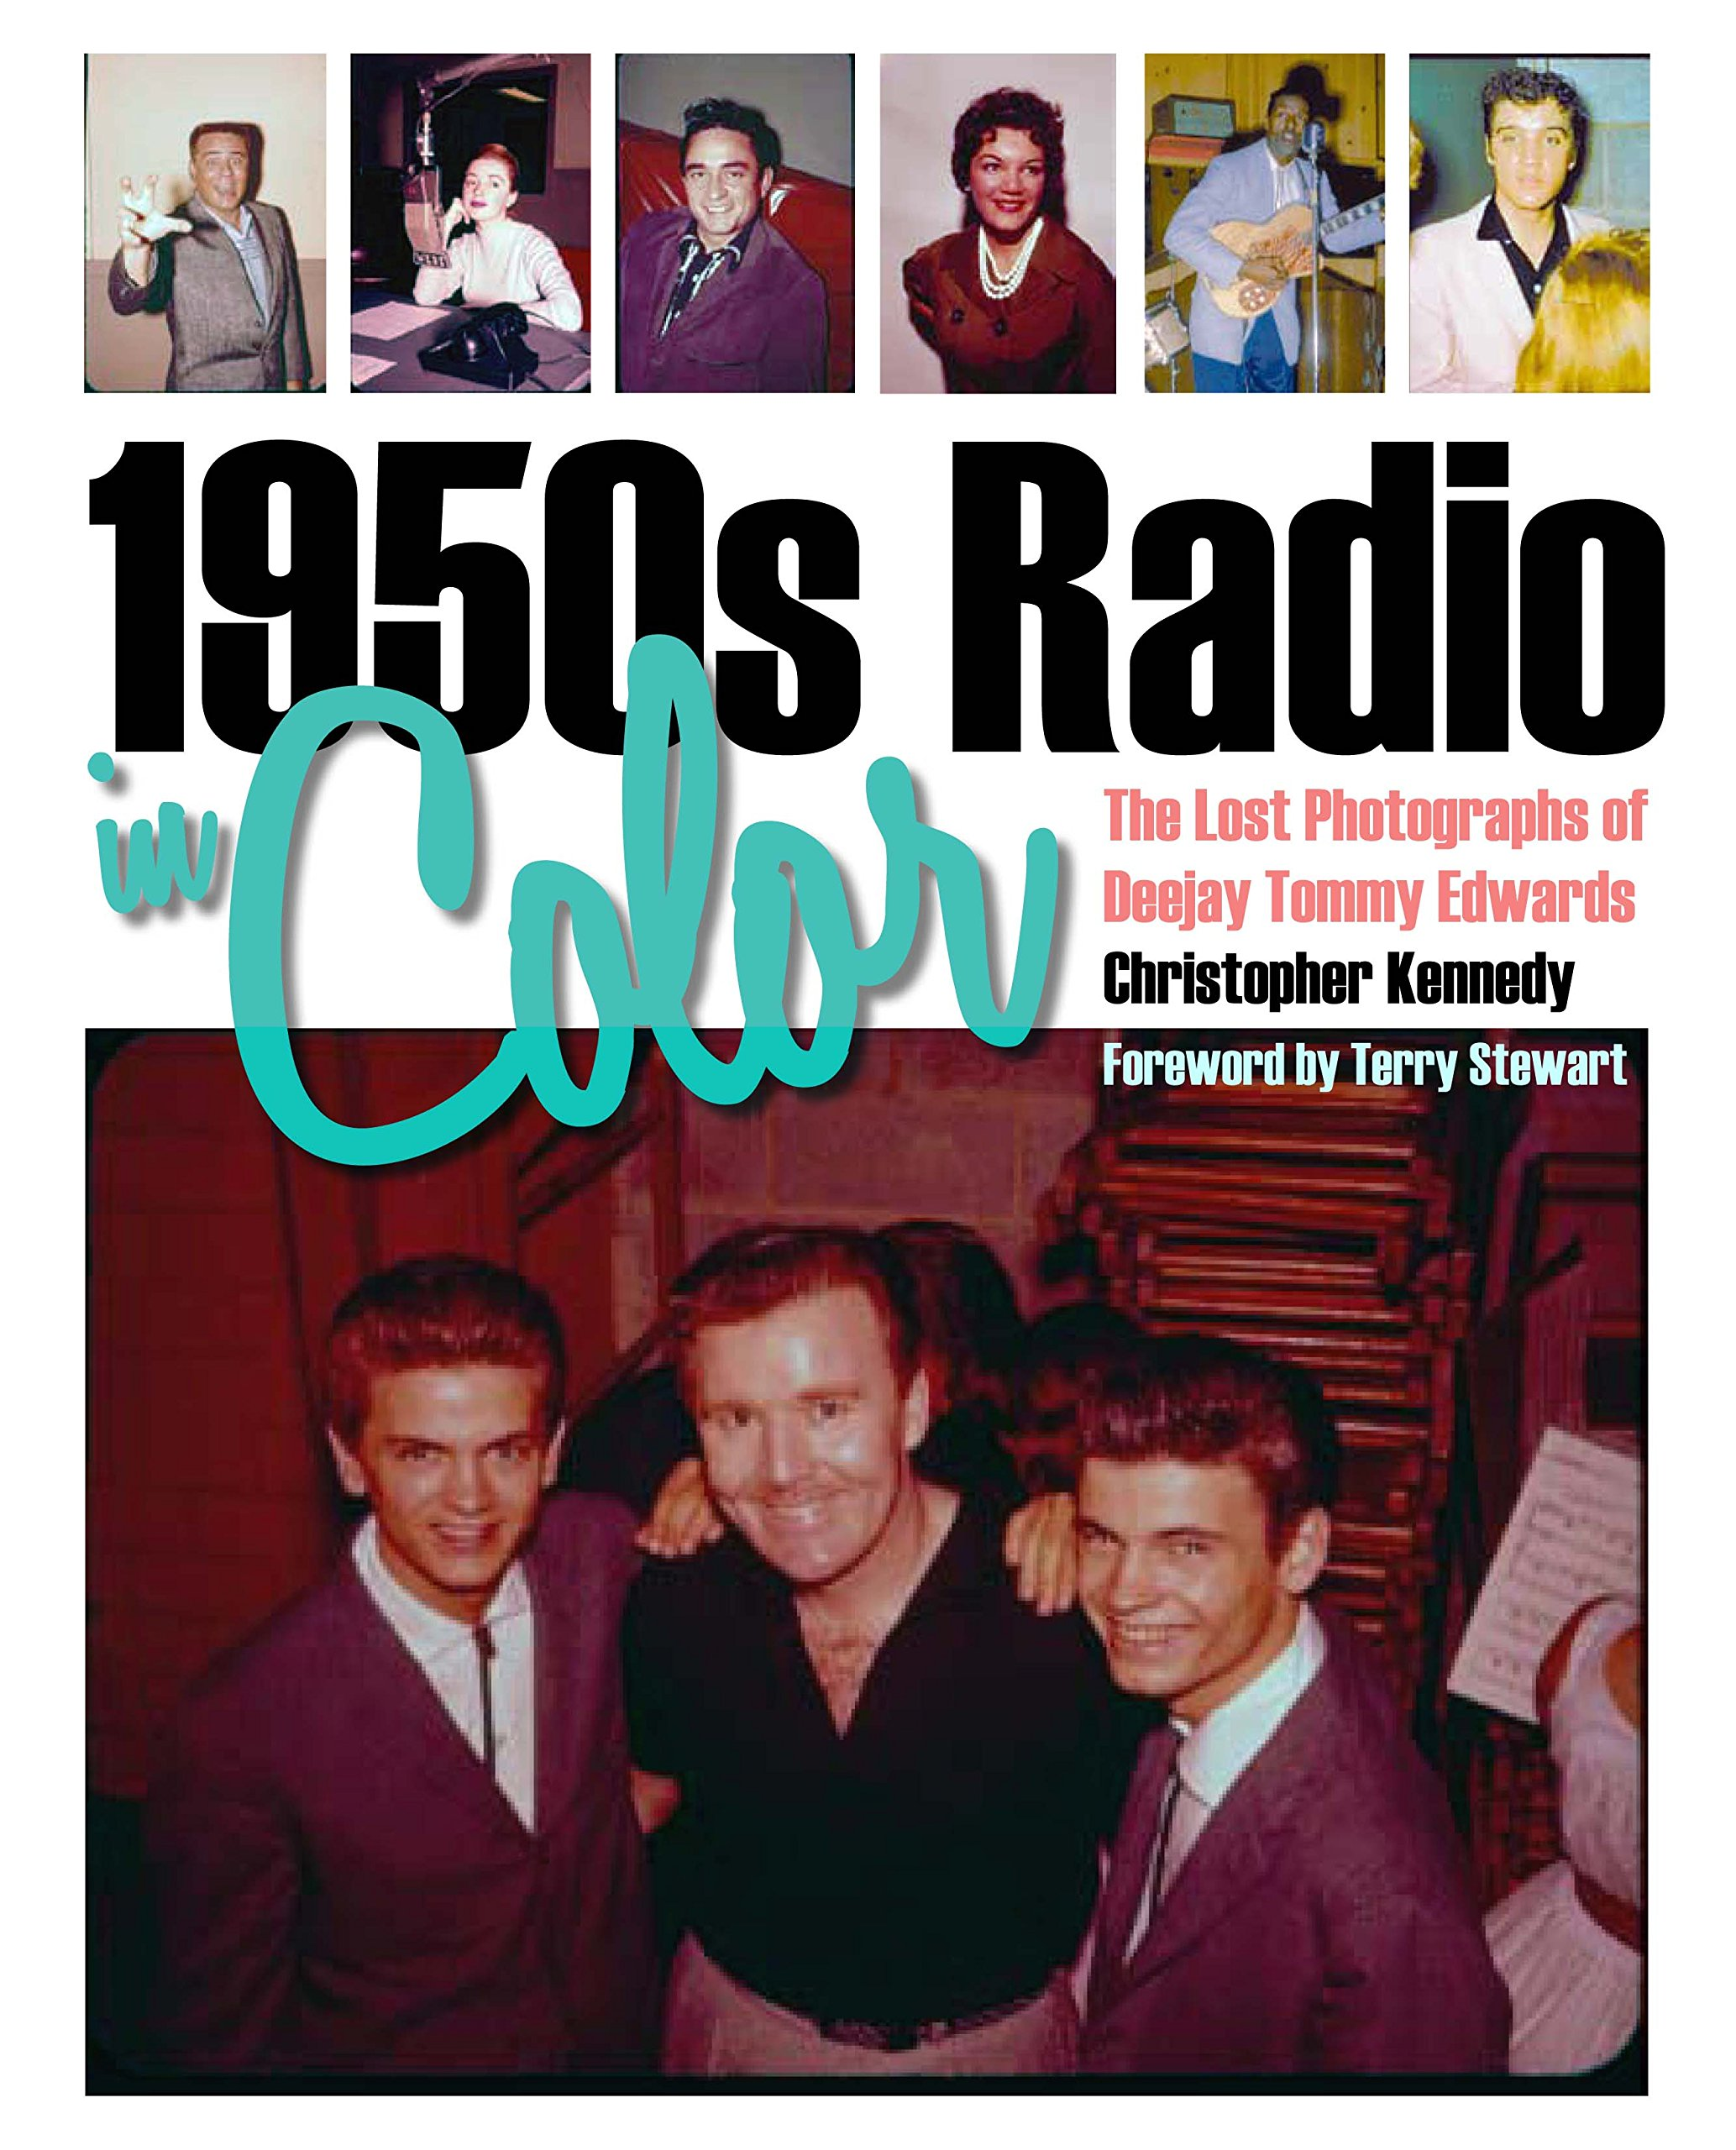 1950s Radio in Color The Lost Photographs of Deejay Tommy Edwards